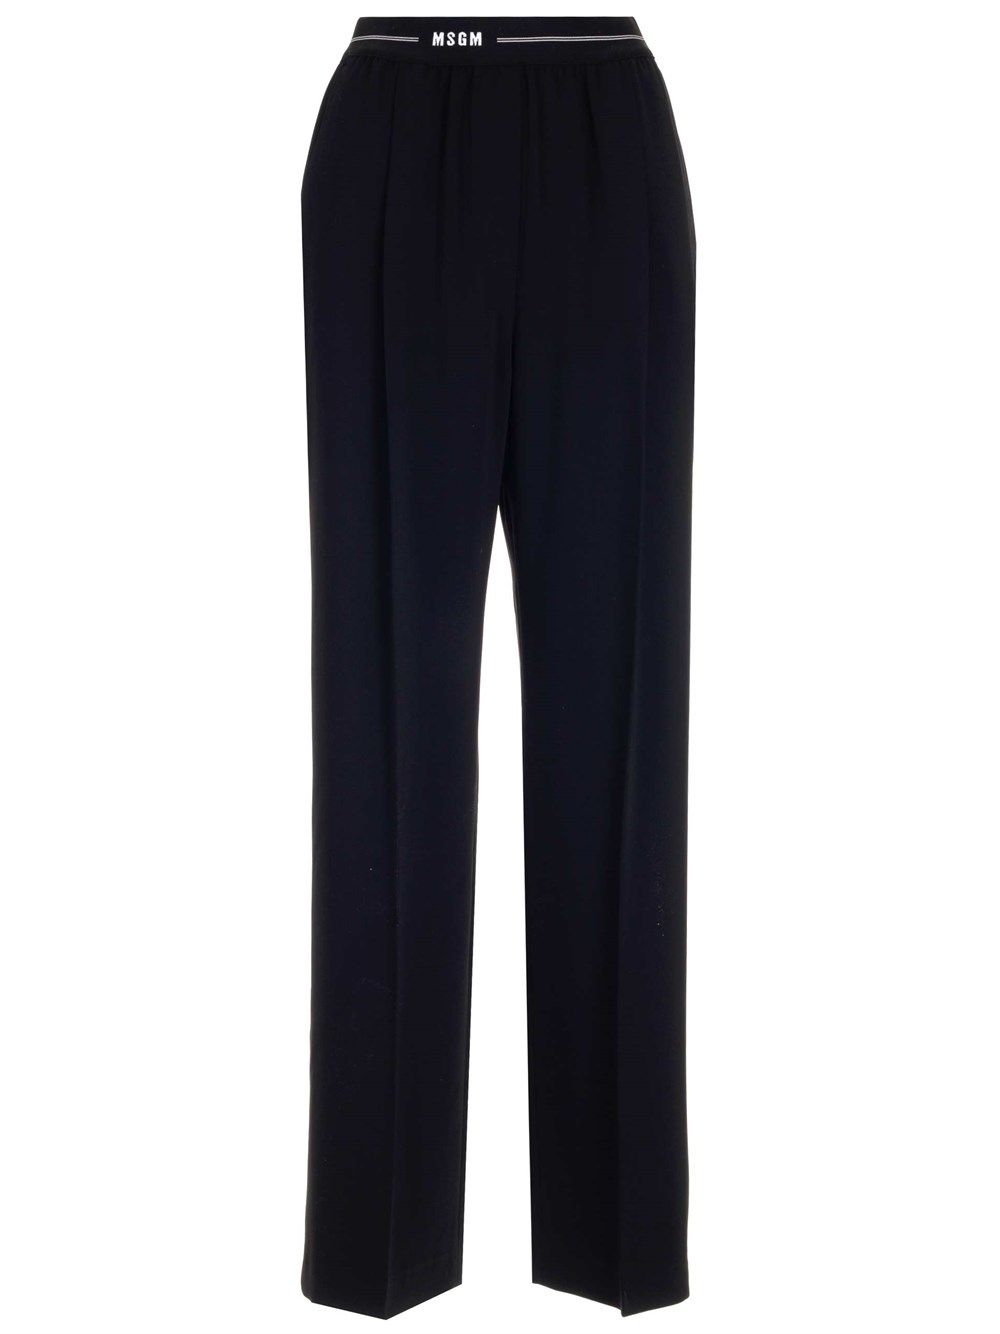 Msgm MSGM WOMEN'S BLACK OTHER MATERIALS PANTS